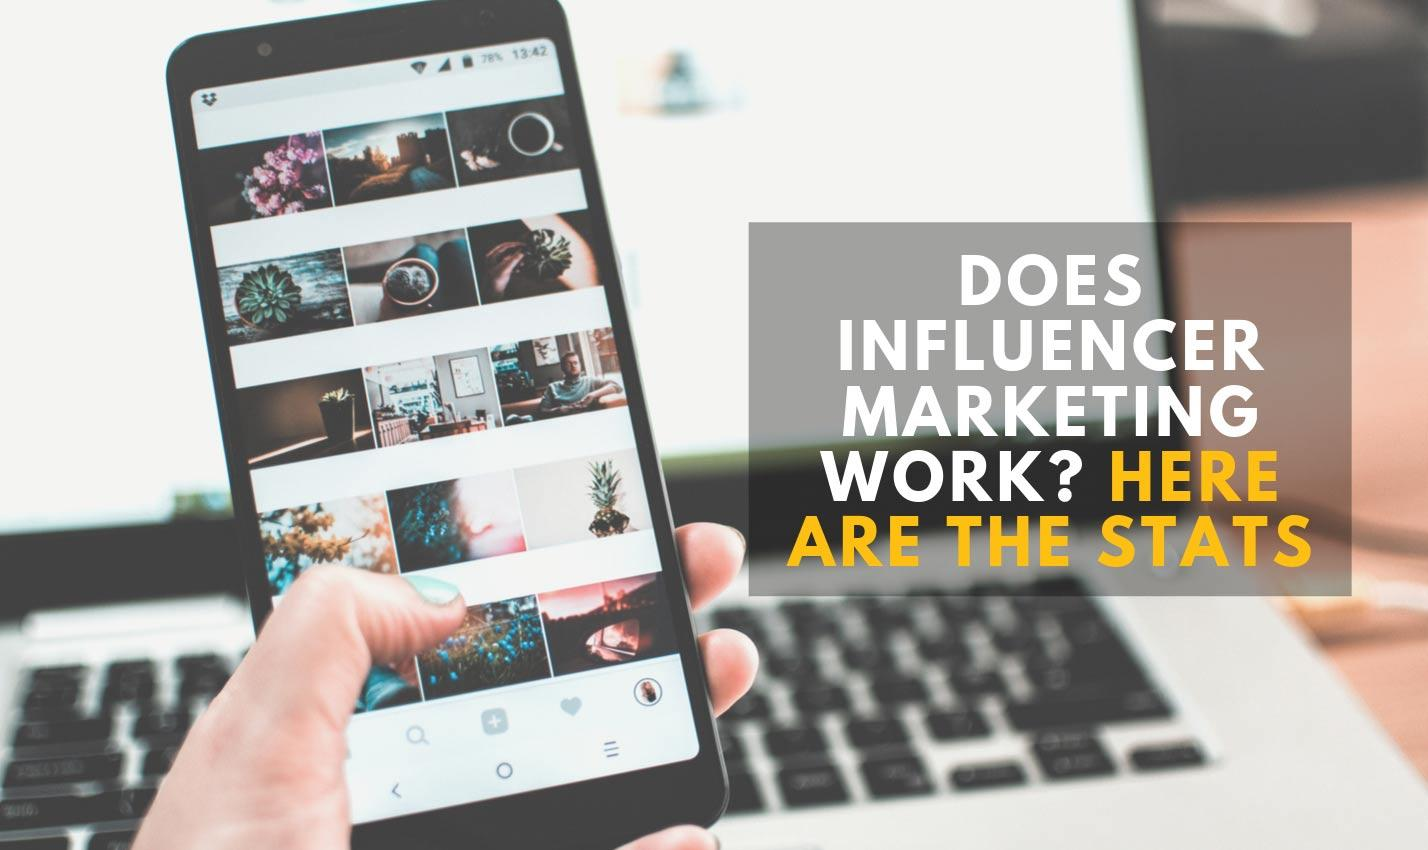 Do influencers work?